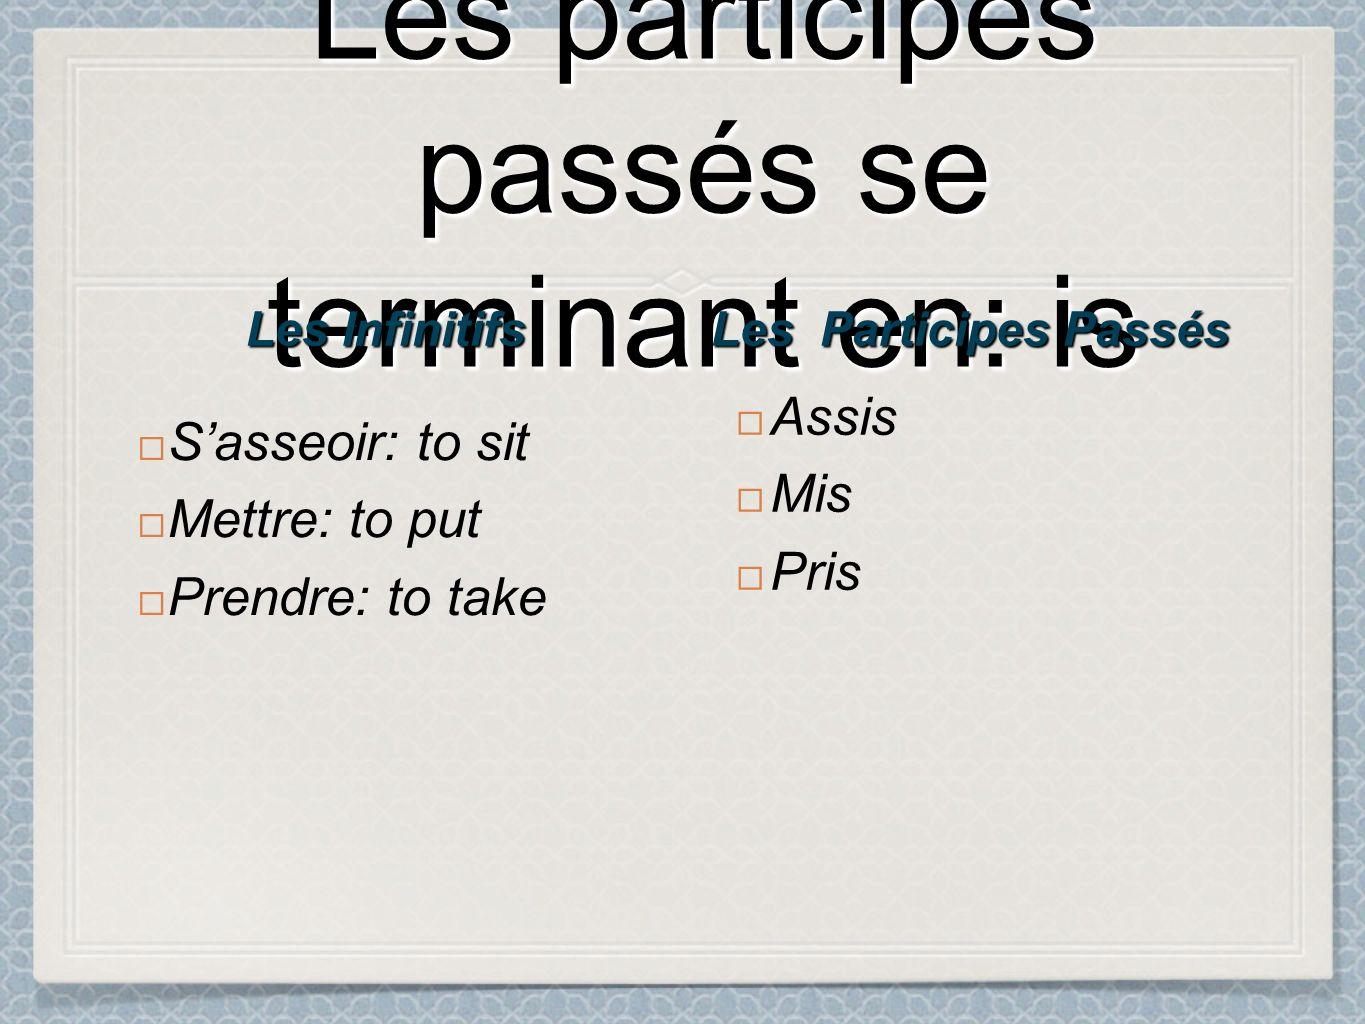 Les participes passés se terminant en: is Sasseoir: to sit Mettre: to put Prendre: to take Assis Mis Pris Les Participes Passés Les Infinitifs